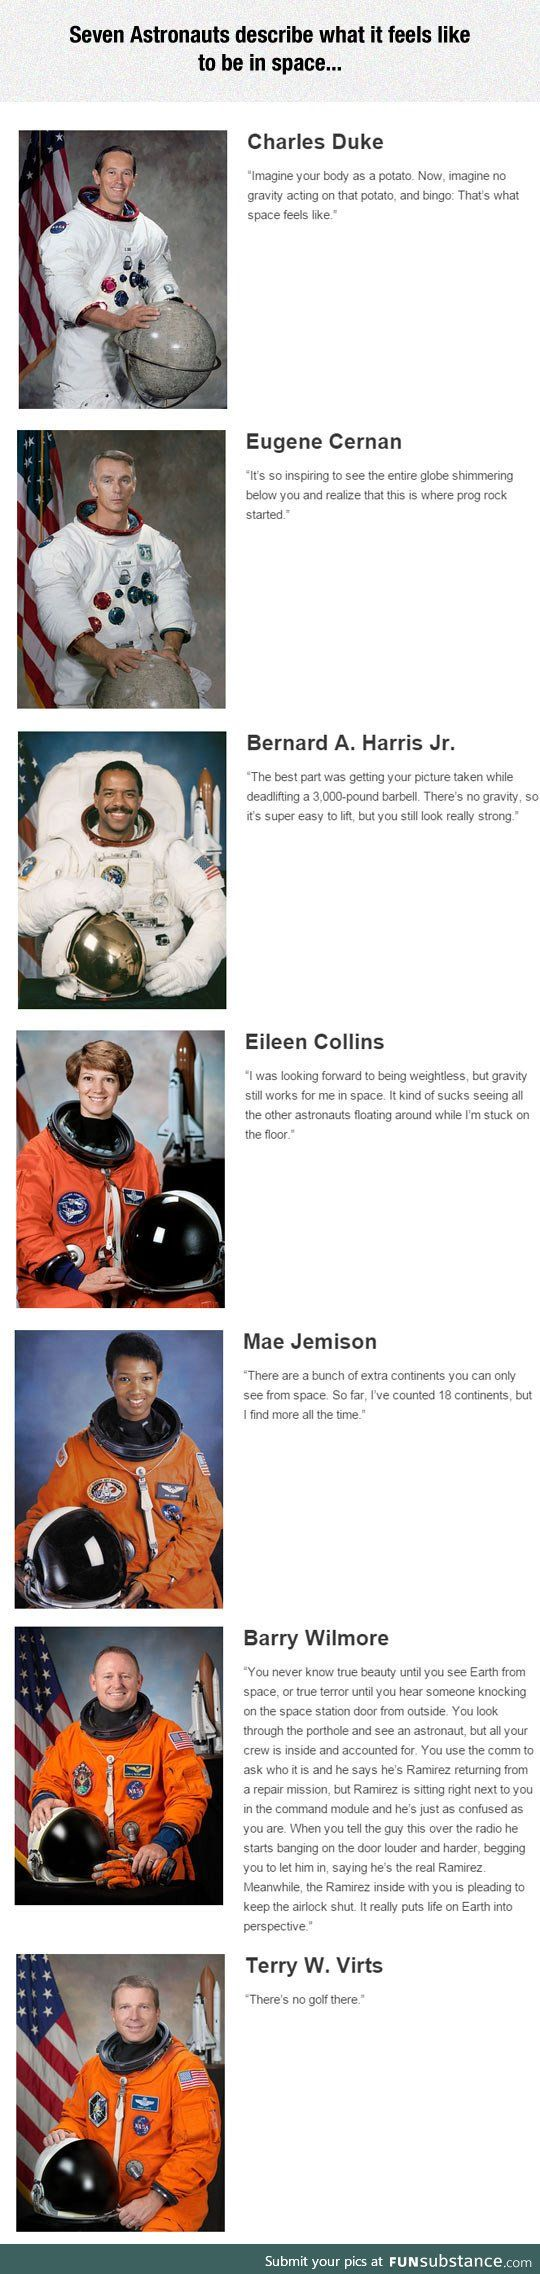 Astronauts describe what it feels like to be in space <--- I love NASA